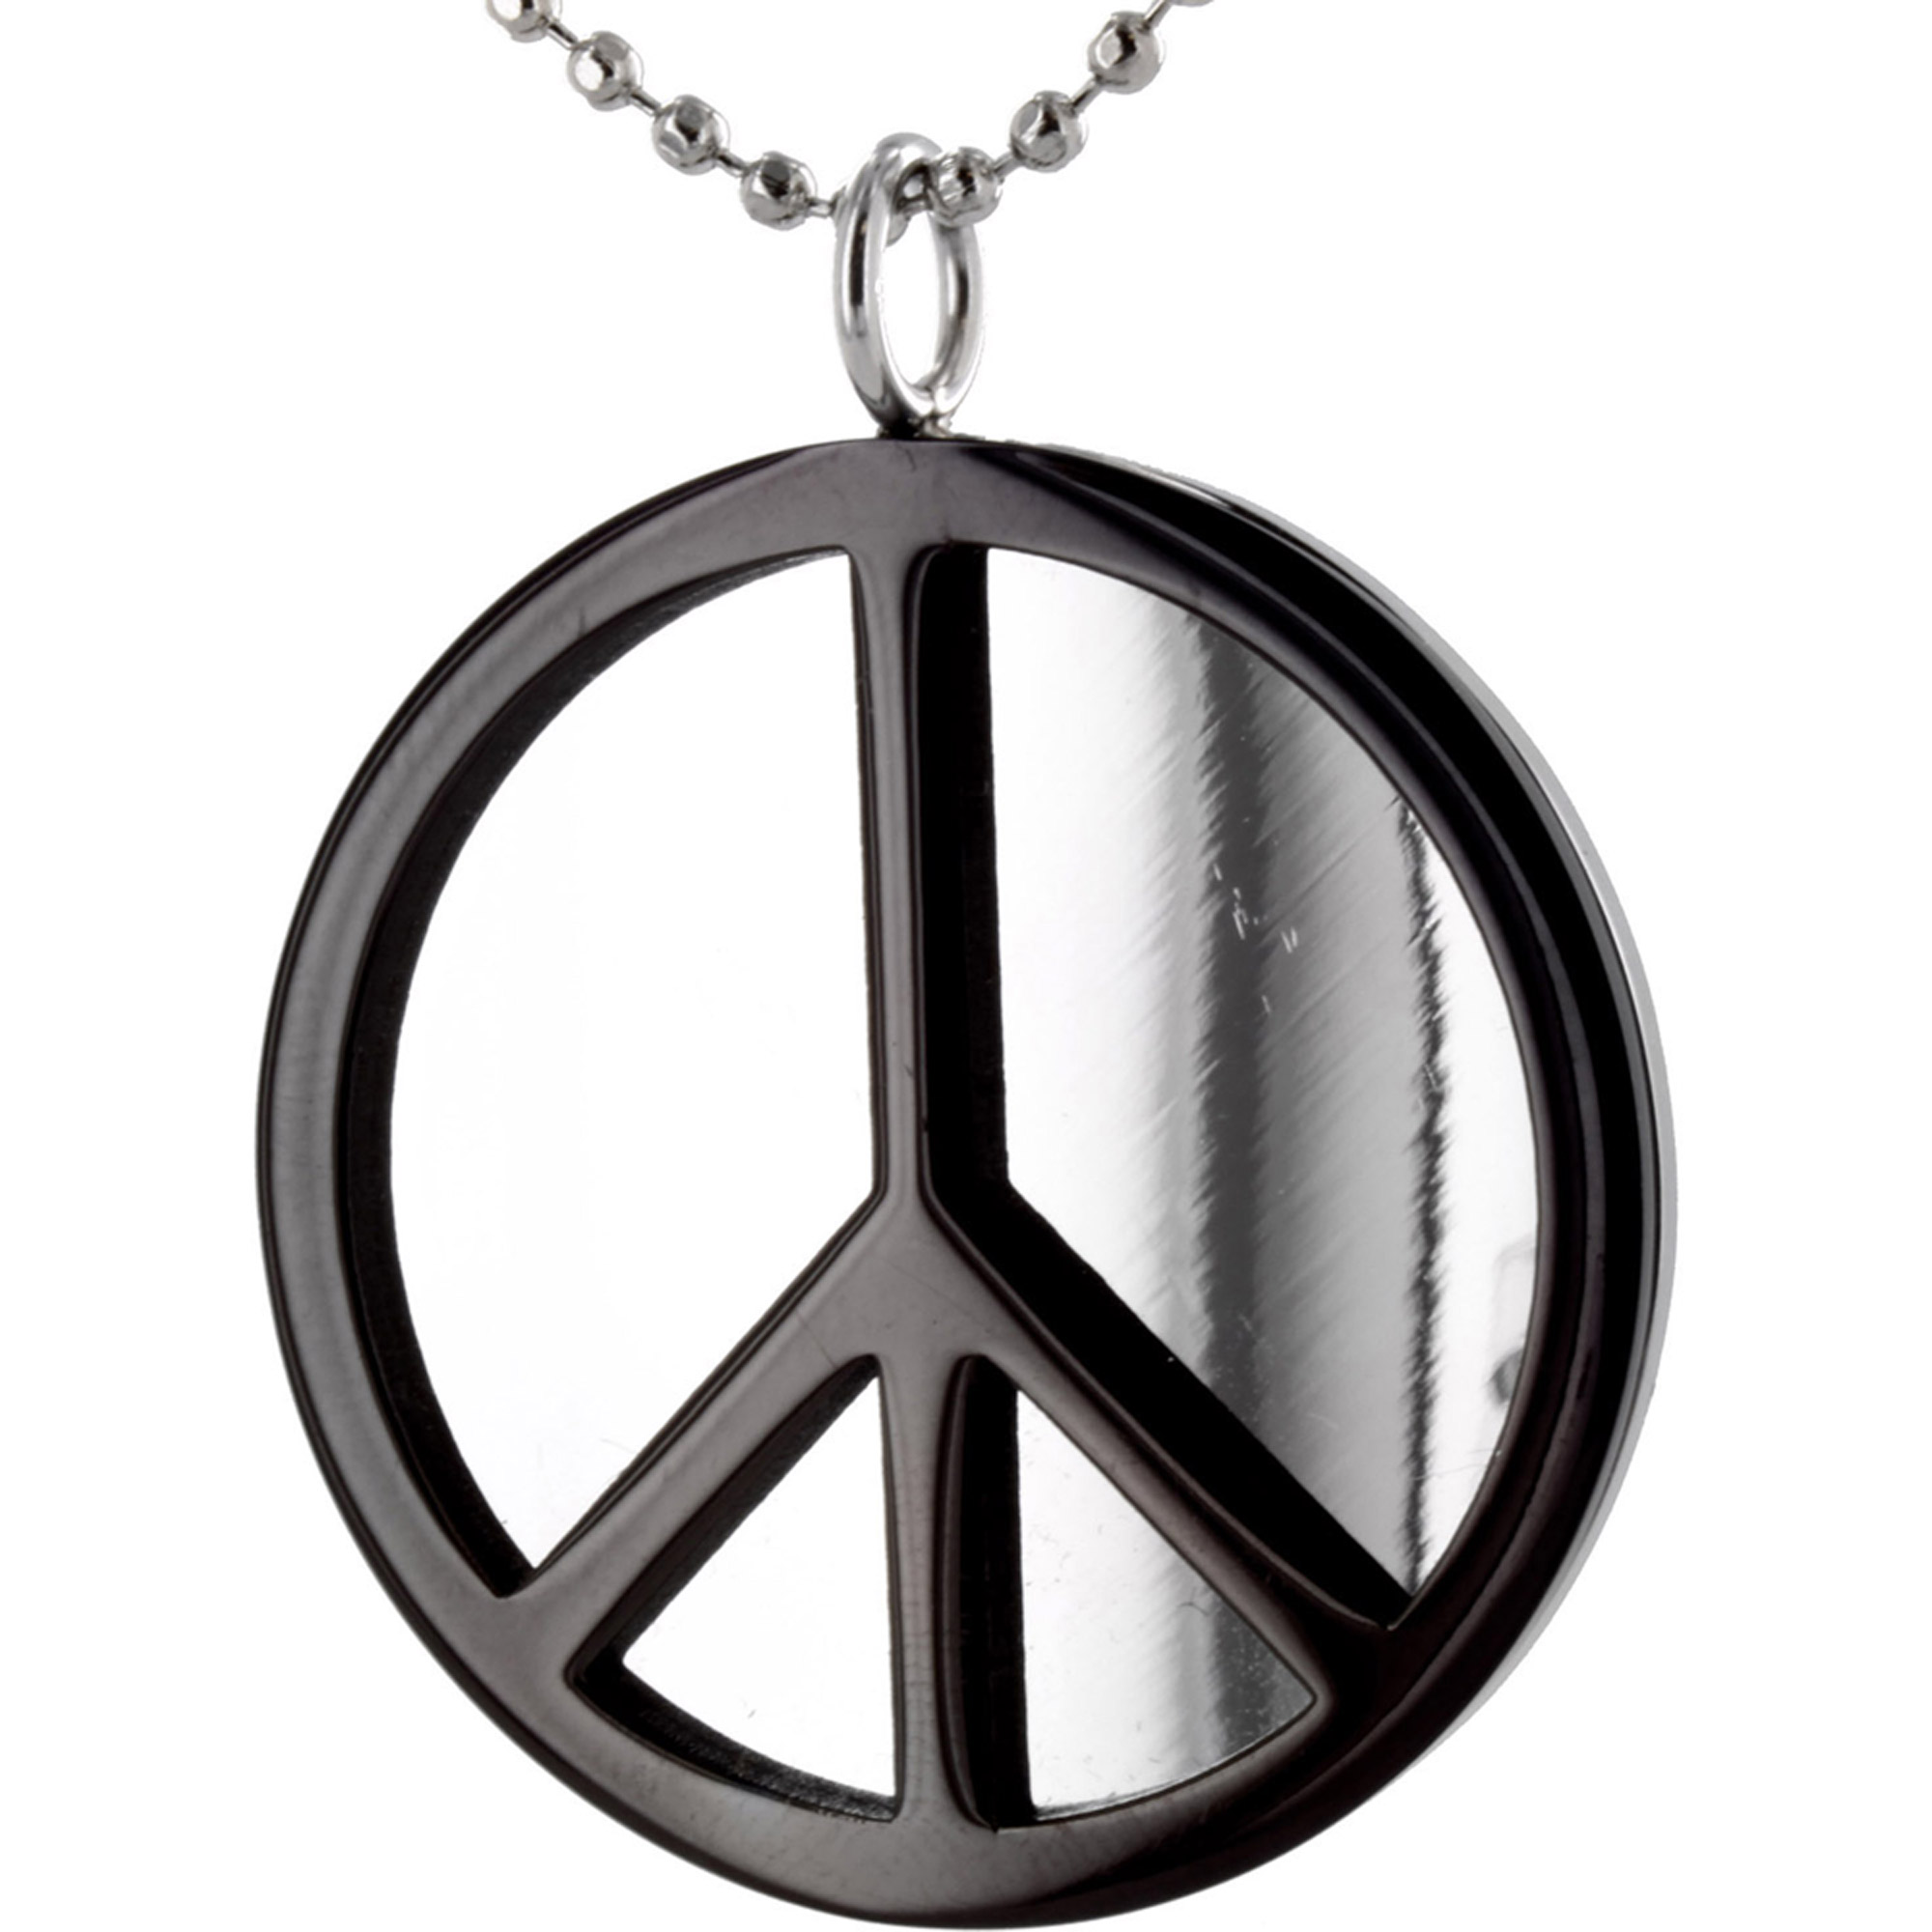 Stainless Steel Polished Black Plated Peace Sign Pendant Walmart